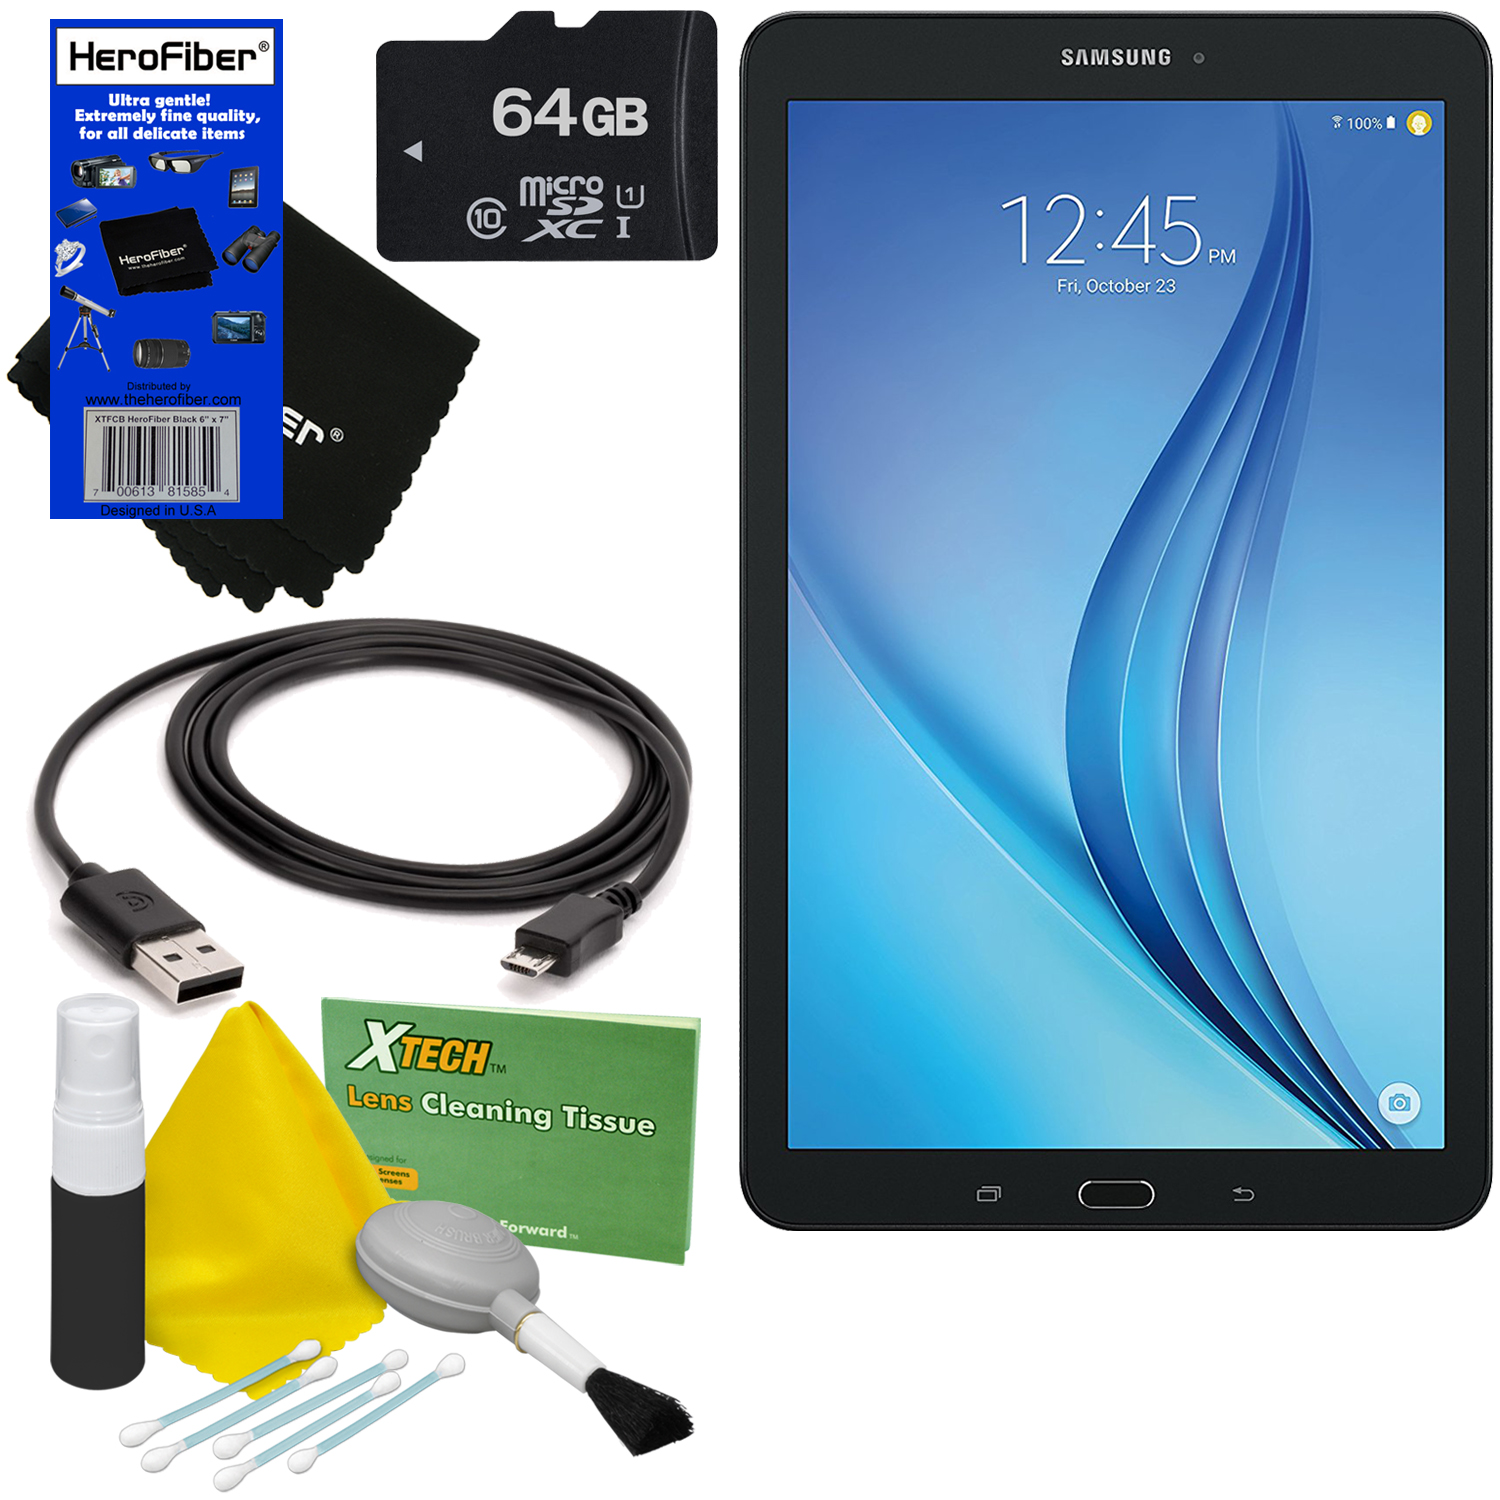 """Samsung Galaxy Tab E 9.6"""" 16GB Wi-Fi Tablet (Black) + 64GB MicroSD High Capacity Memory Card + USB Cable + 5pc Deluxe Cleaning Kit + HeroFiber® Ultra Gentle Cleaning Cloth"""